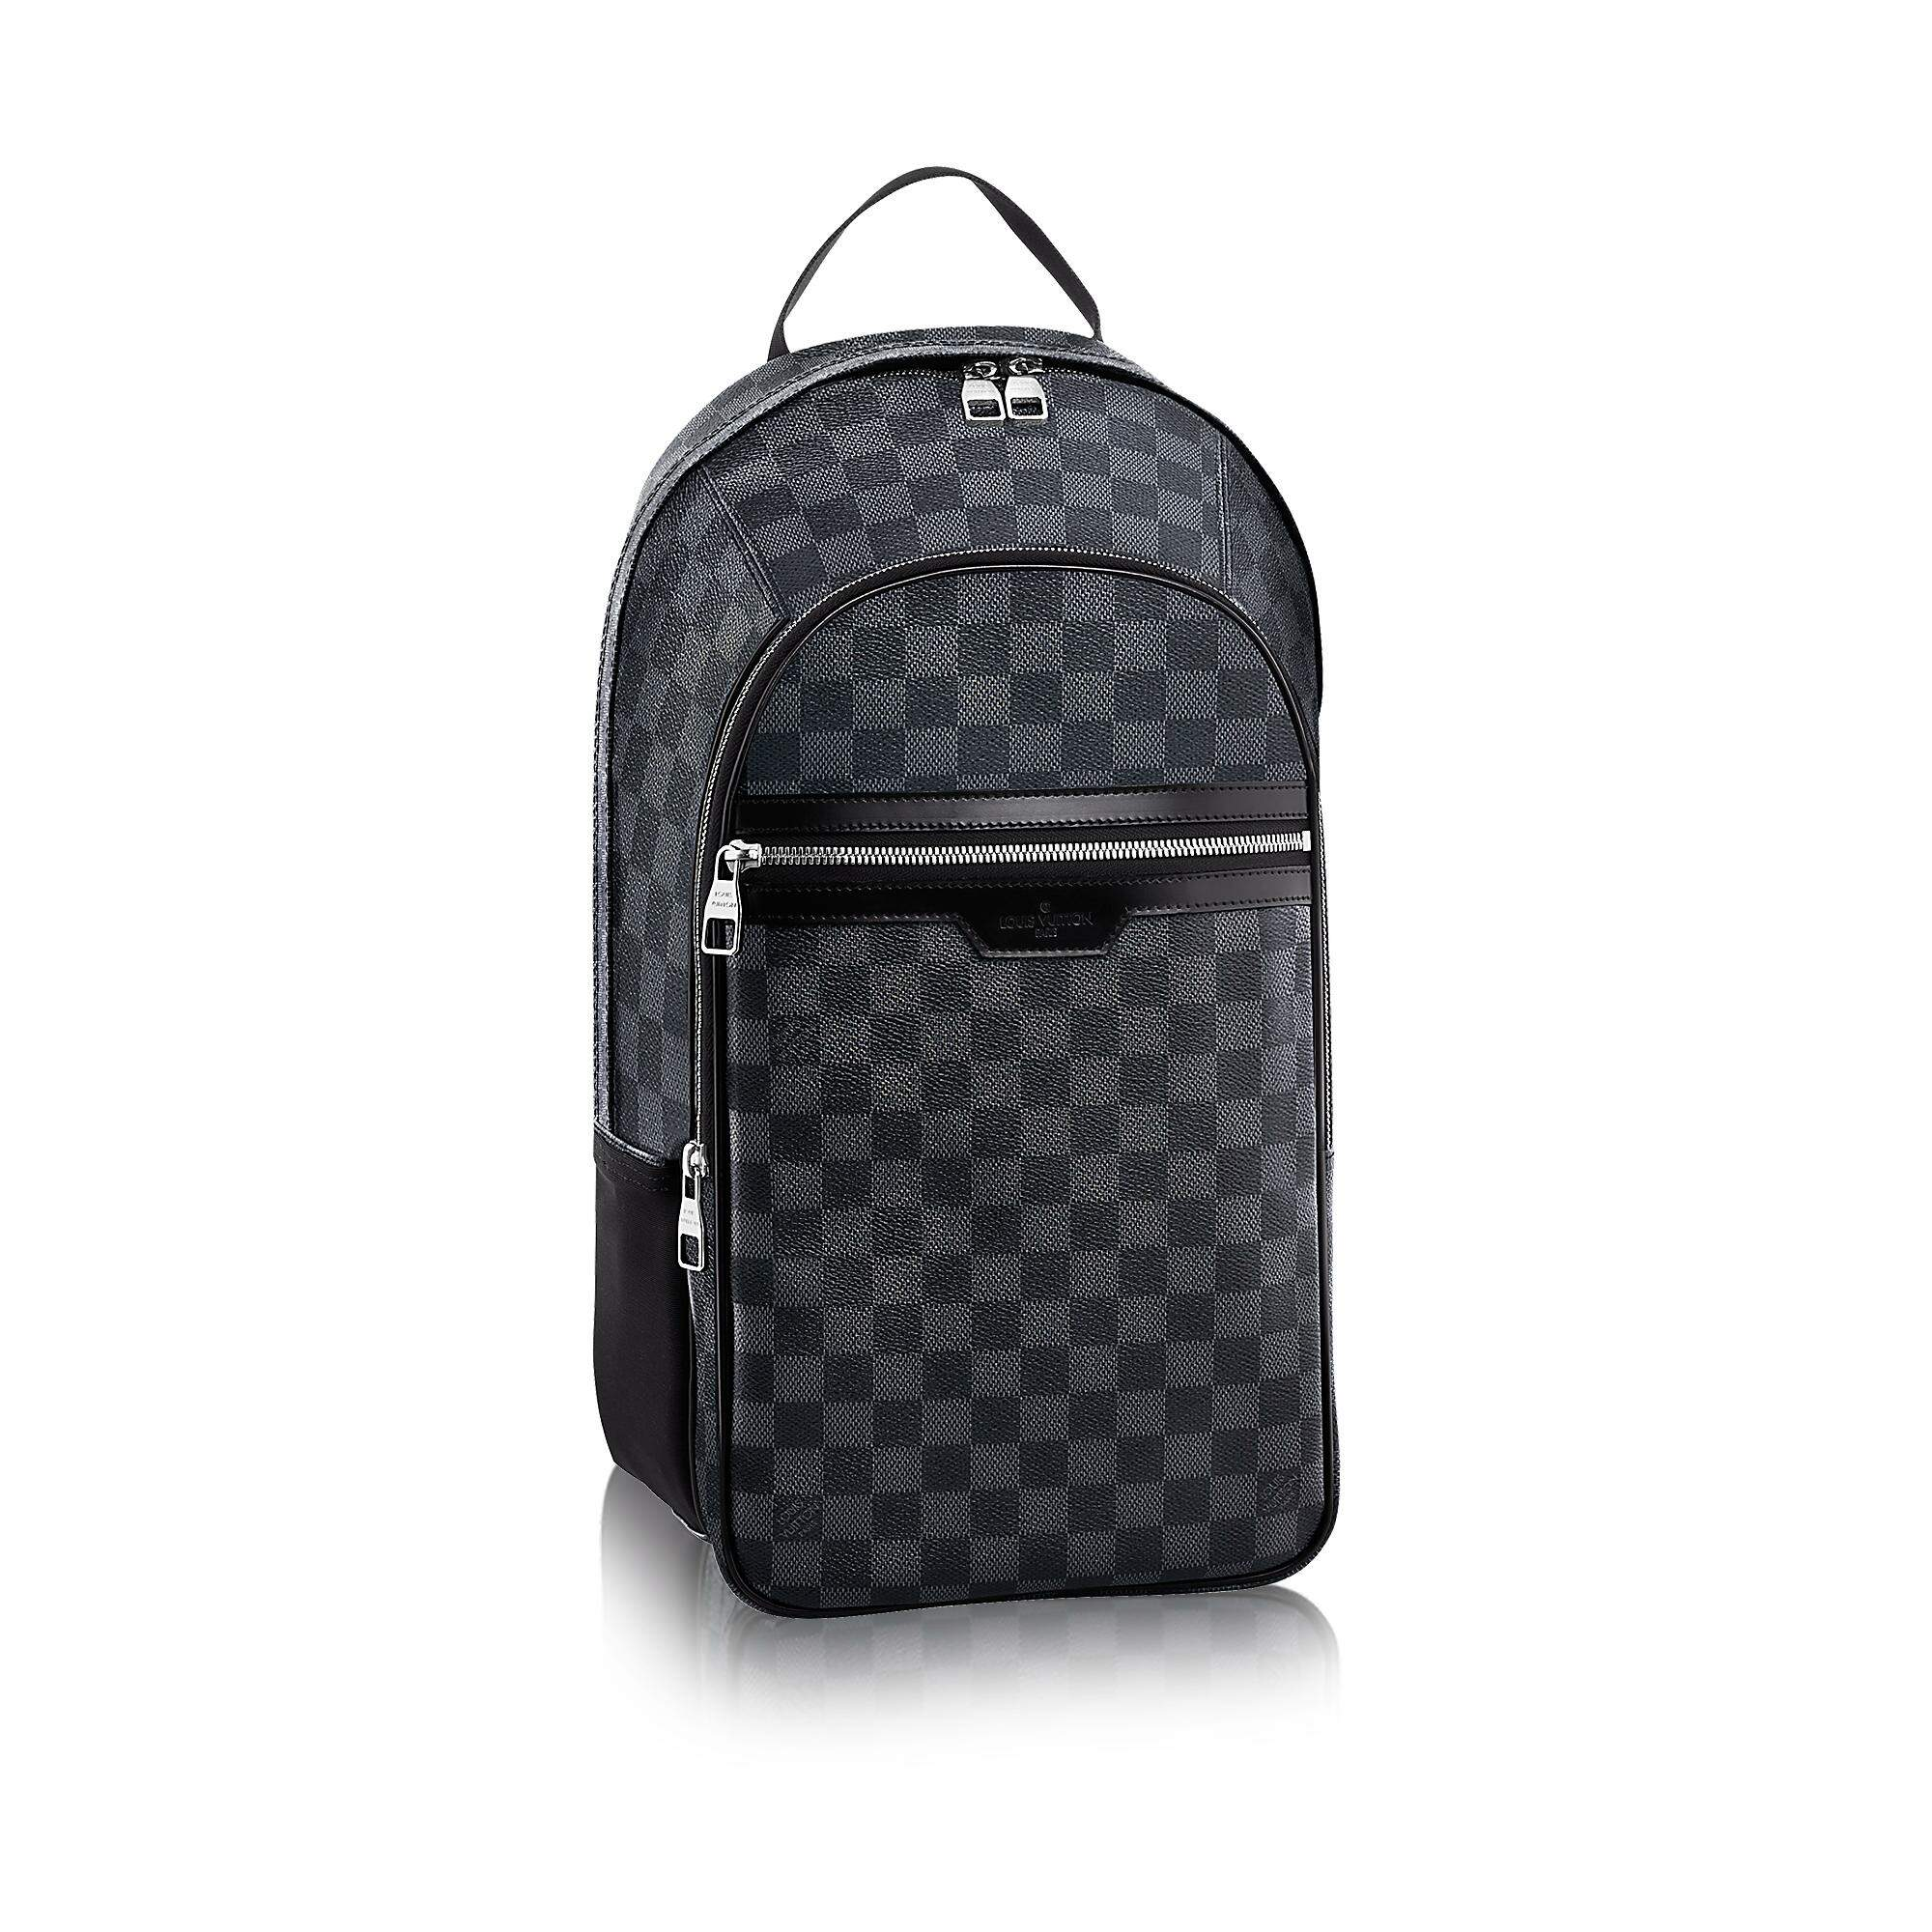 Mochila Louis Vuitton - Michael Canvas Damier Graphite